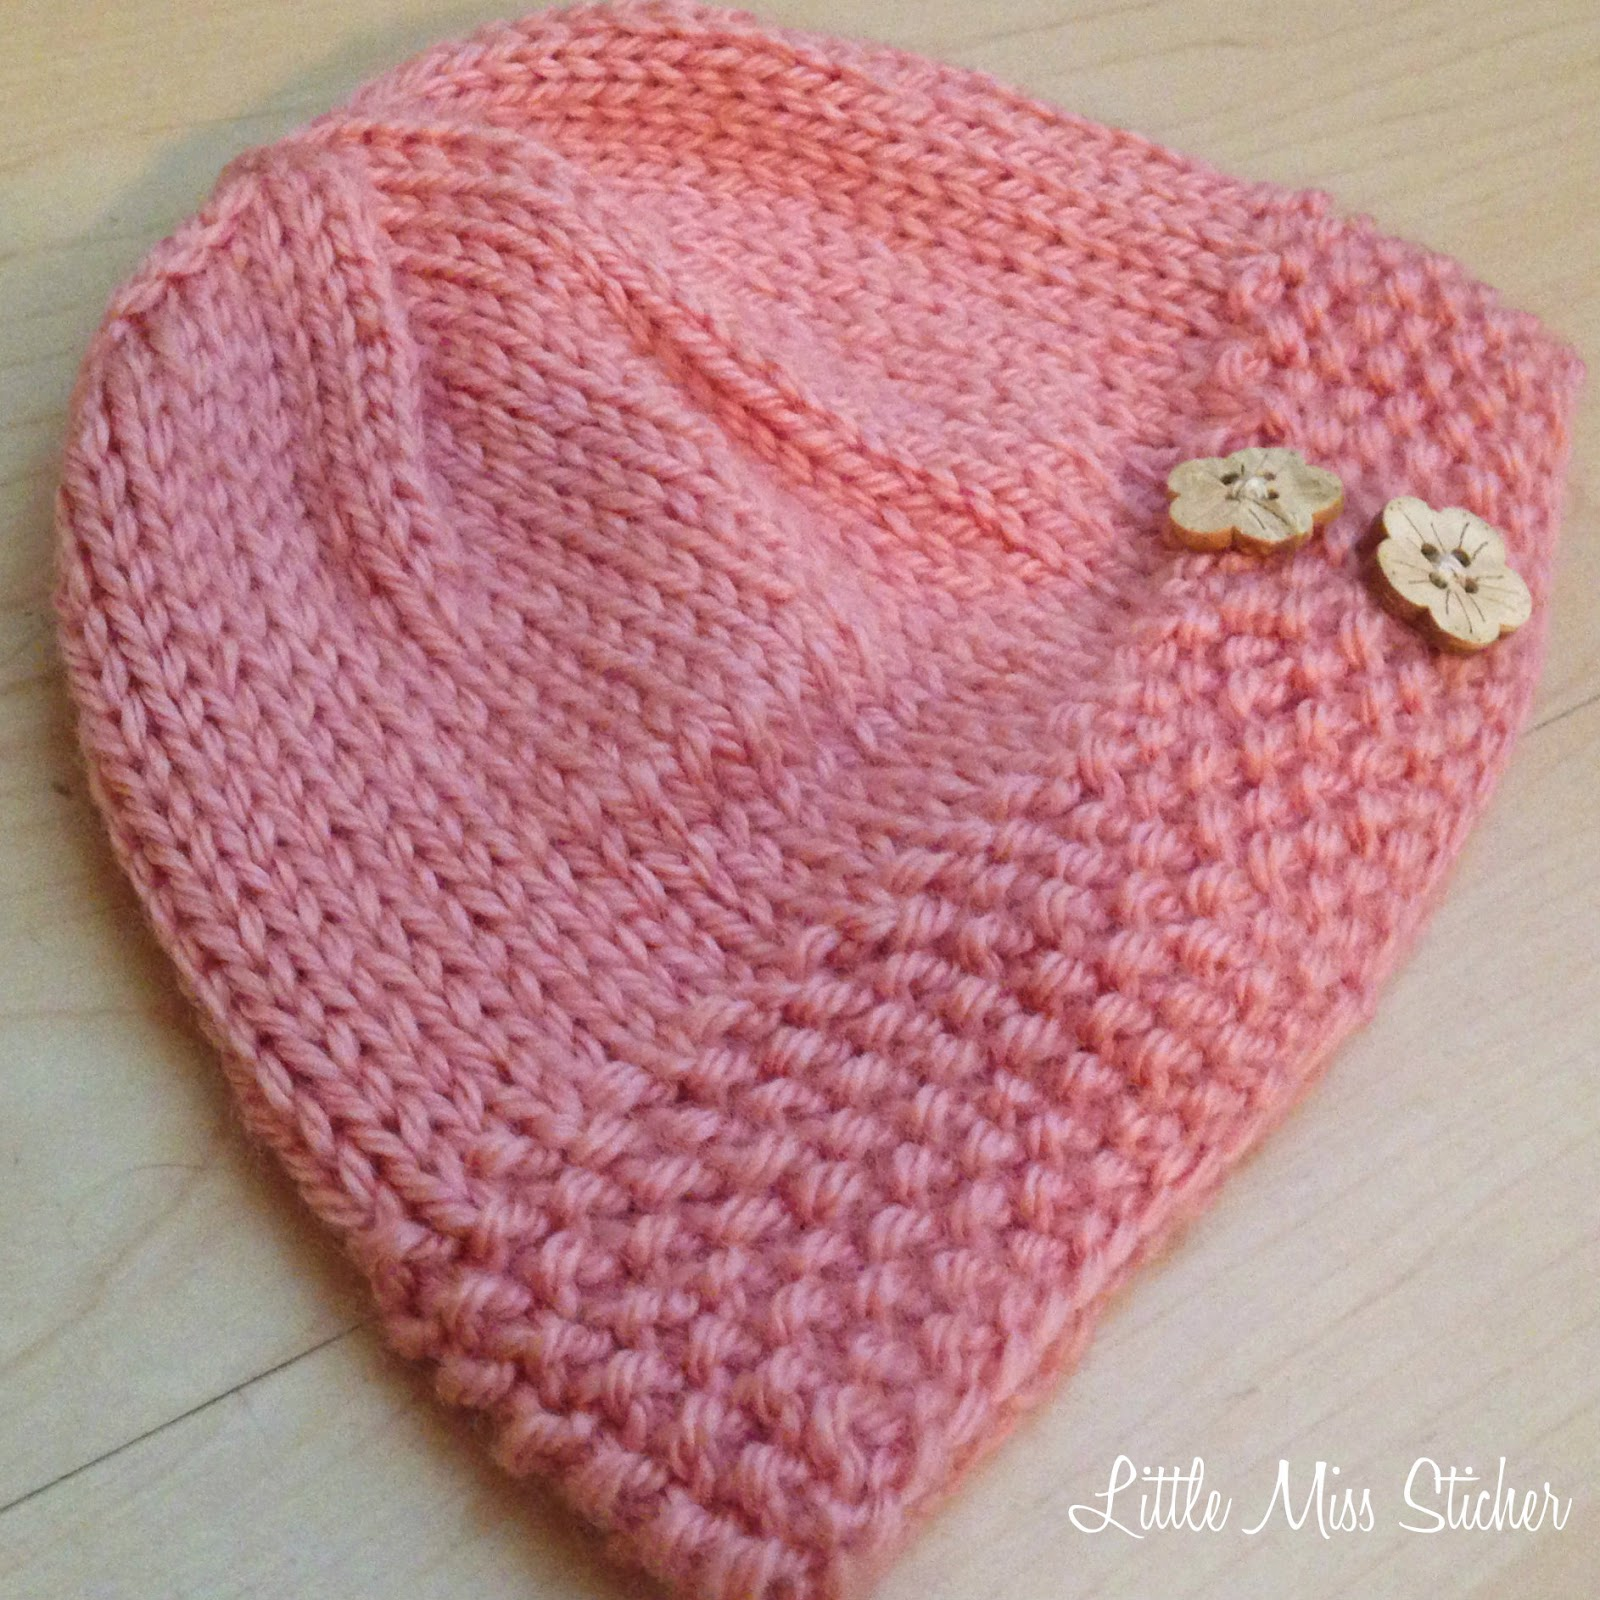 Knitting Patterns Free Beanie Hats : Little Miss Stitcher: Bitty Beanie Free Knit Pattern